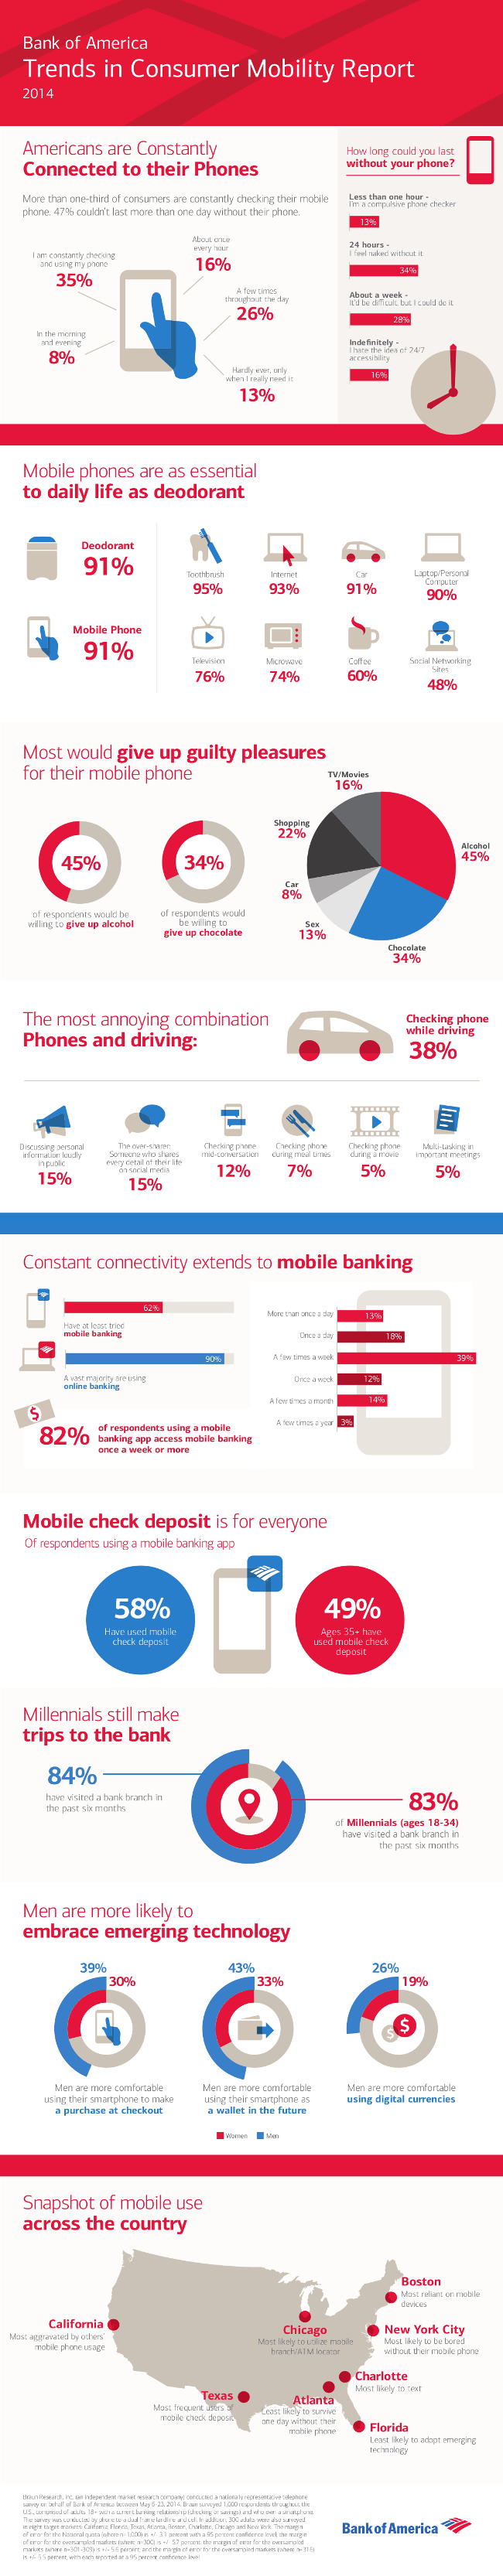 bank-of-america-mobile-trends-2015